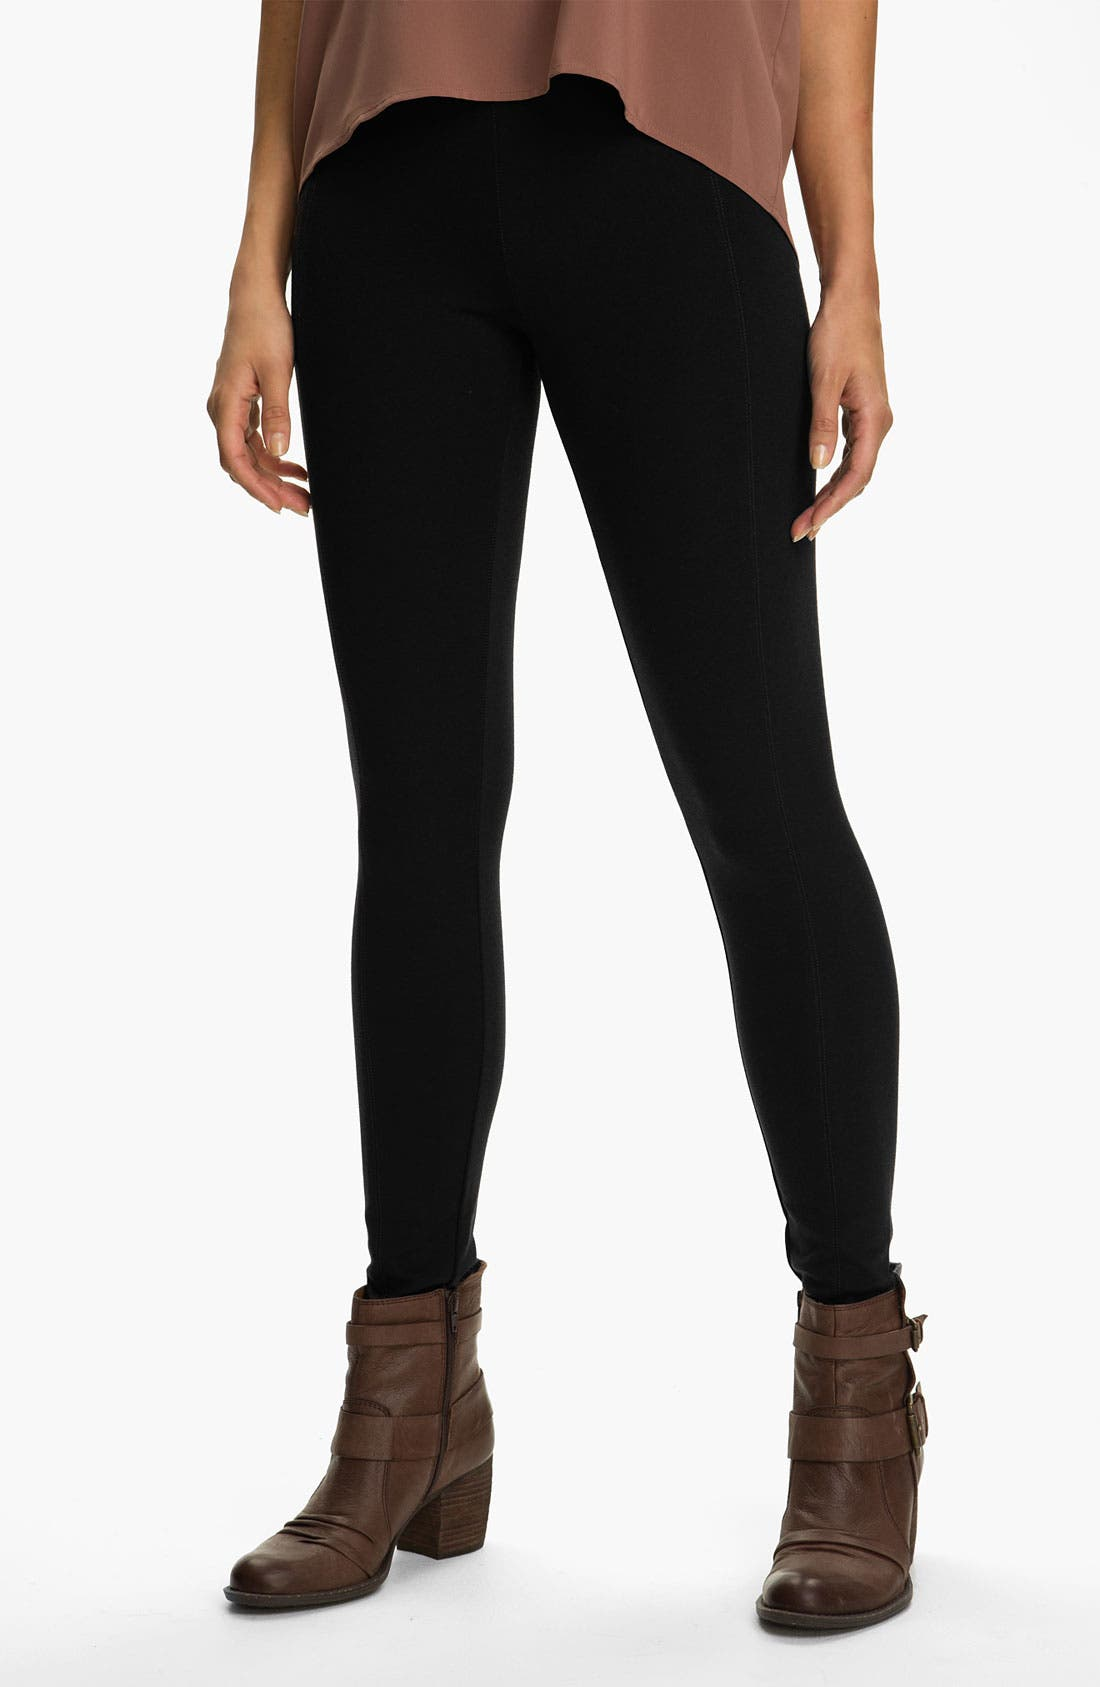 Alternate Image 1 Selected - Nordstrom 'You Flatter Me' Leggings